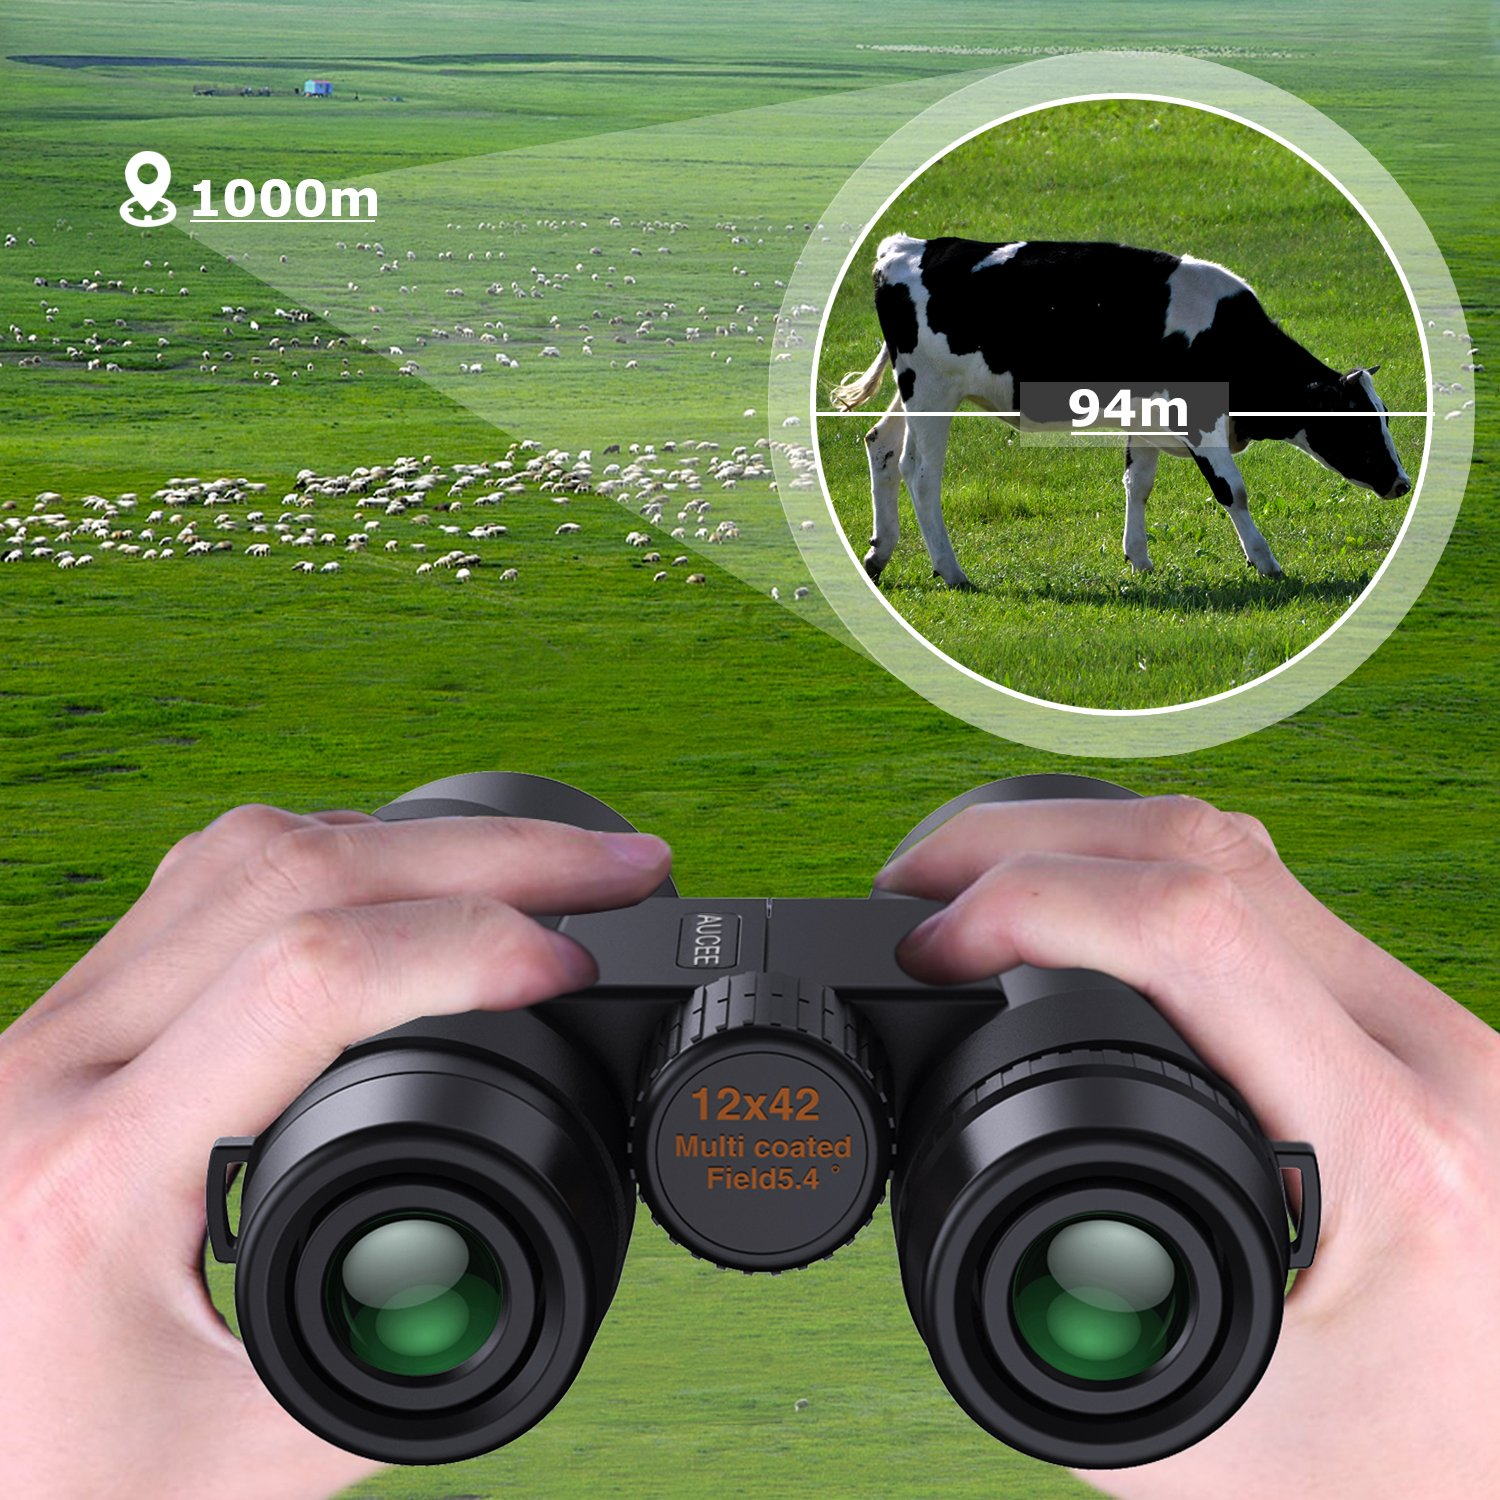 12 x 42 Binoculars for Adults, AUCEE Compact Binoculars for Bird Watching Concerts Football Sports Waterproof Professional HD Binoculars for Travel Hiking-BAK4 Prism FMC Lens with Strap Carry Bag by AUCEE (Image #5)